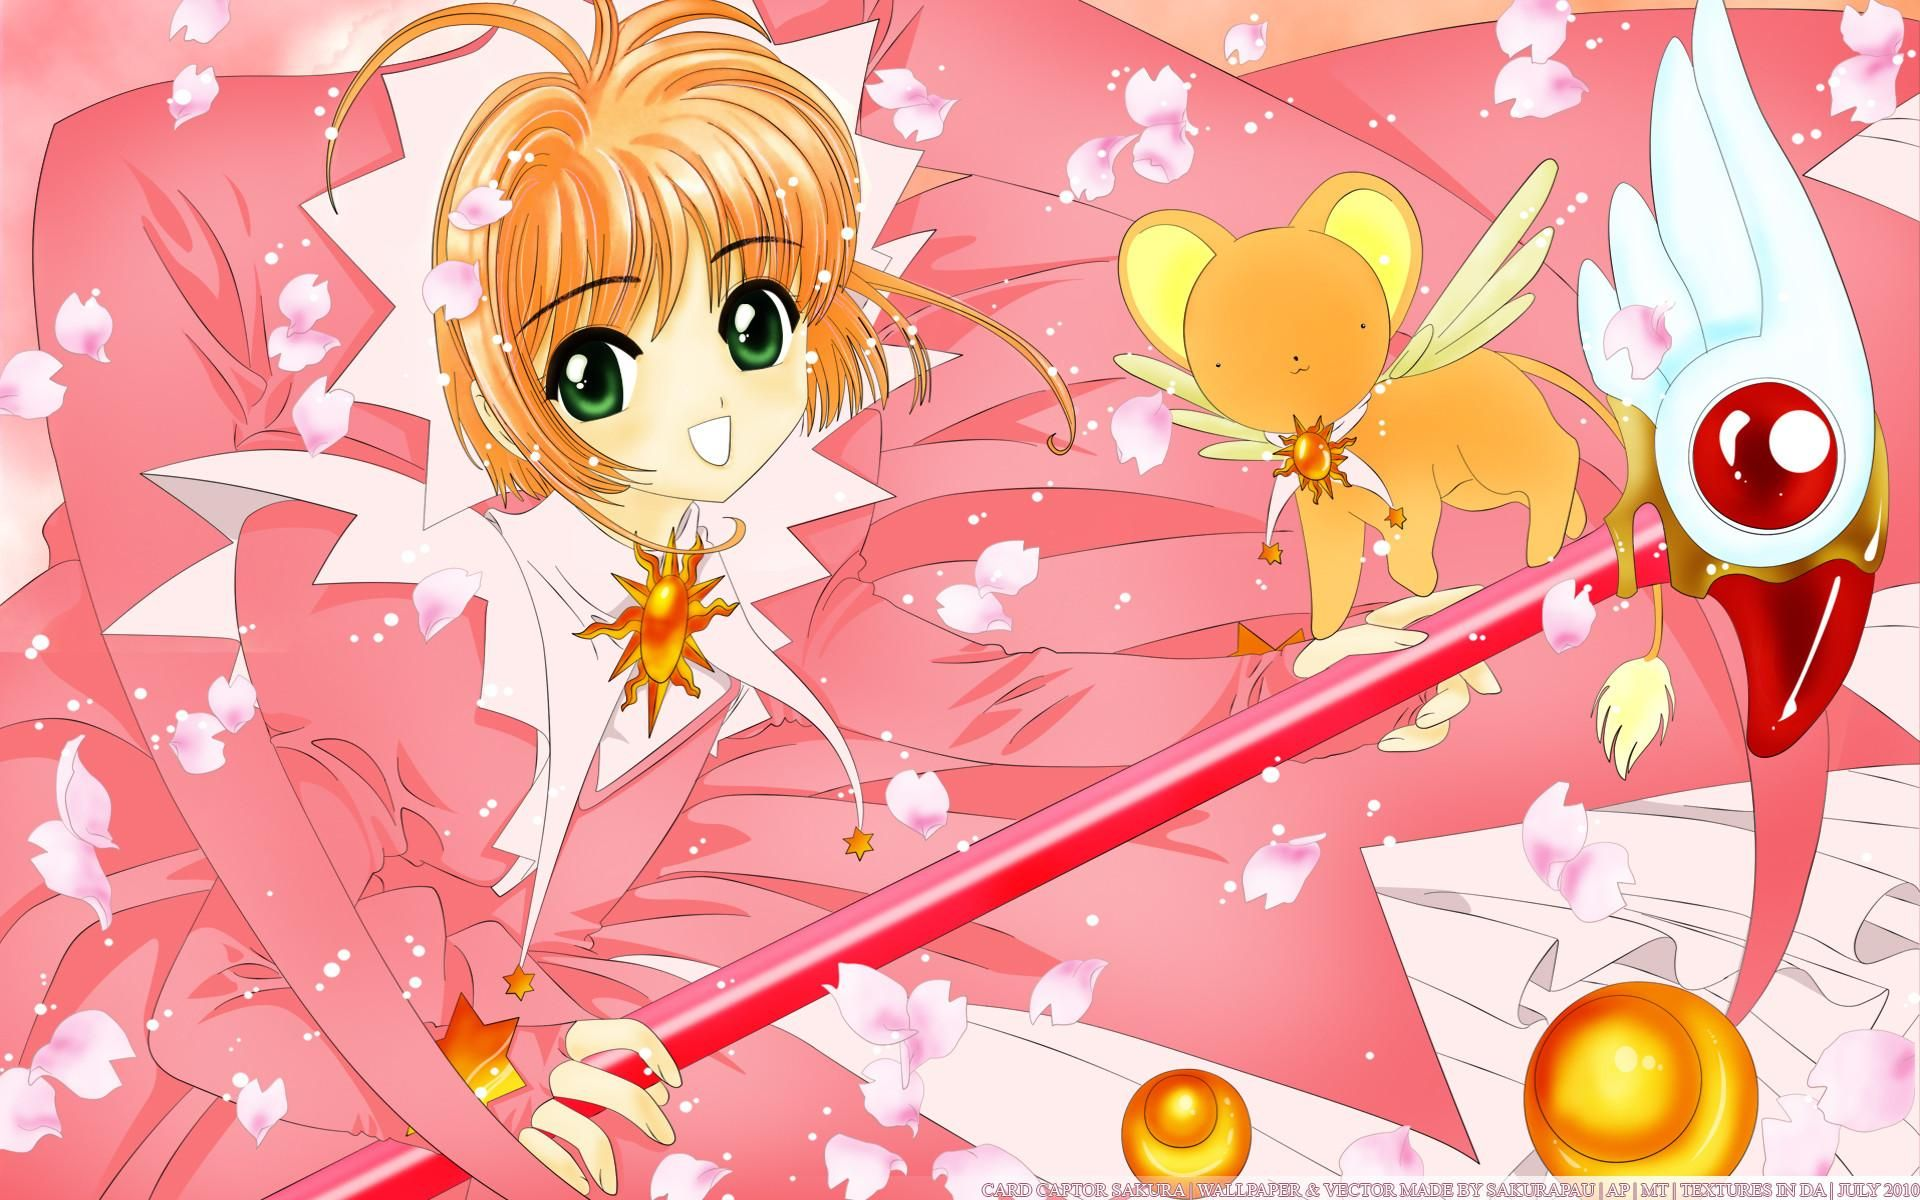 Download Cardcaptor Sakura Wallpaper Hd Hd Backgrounds